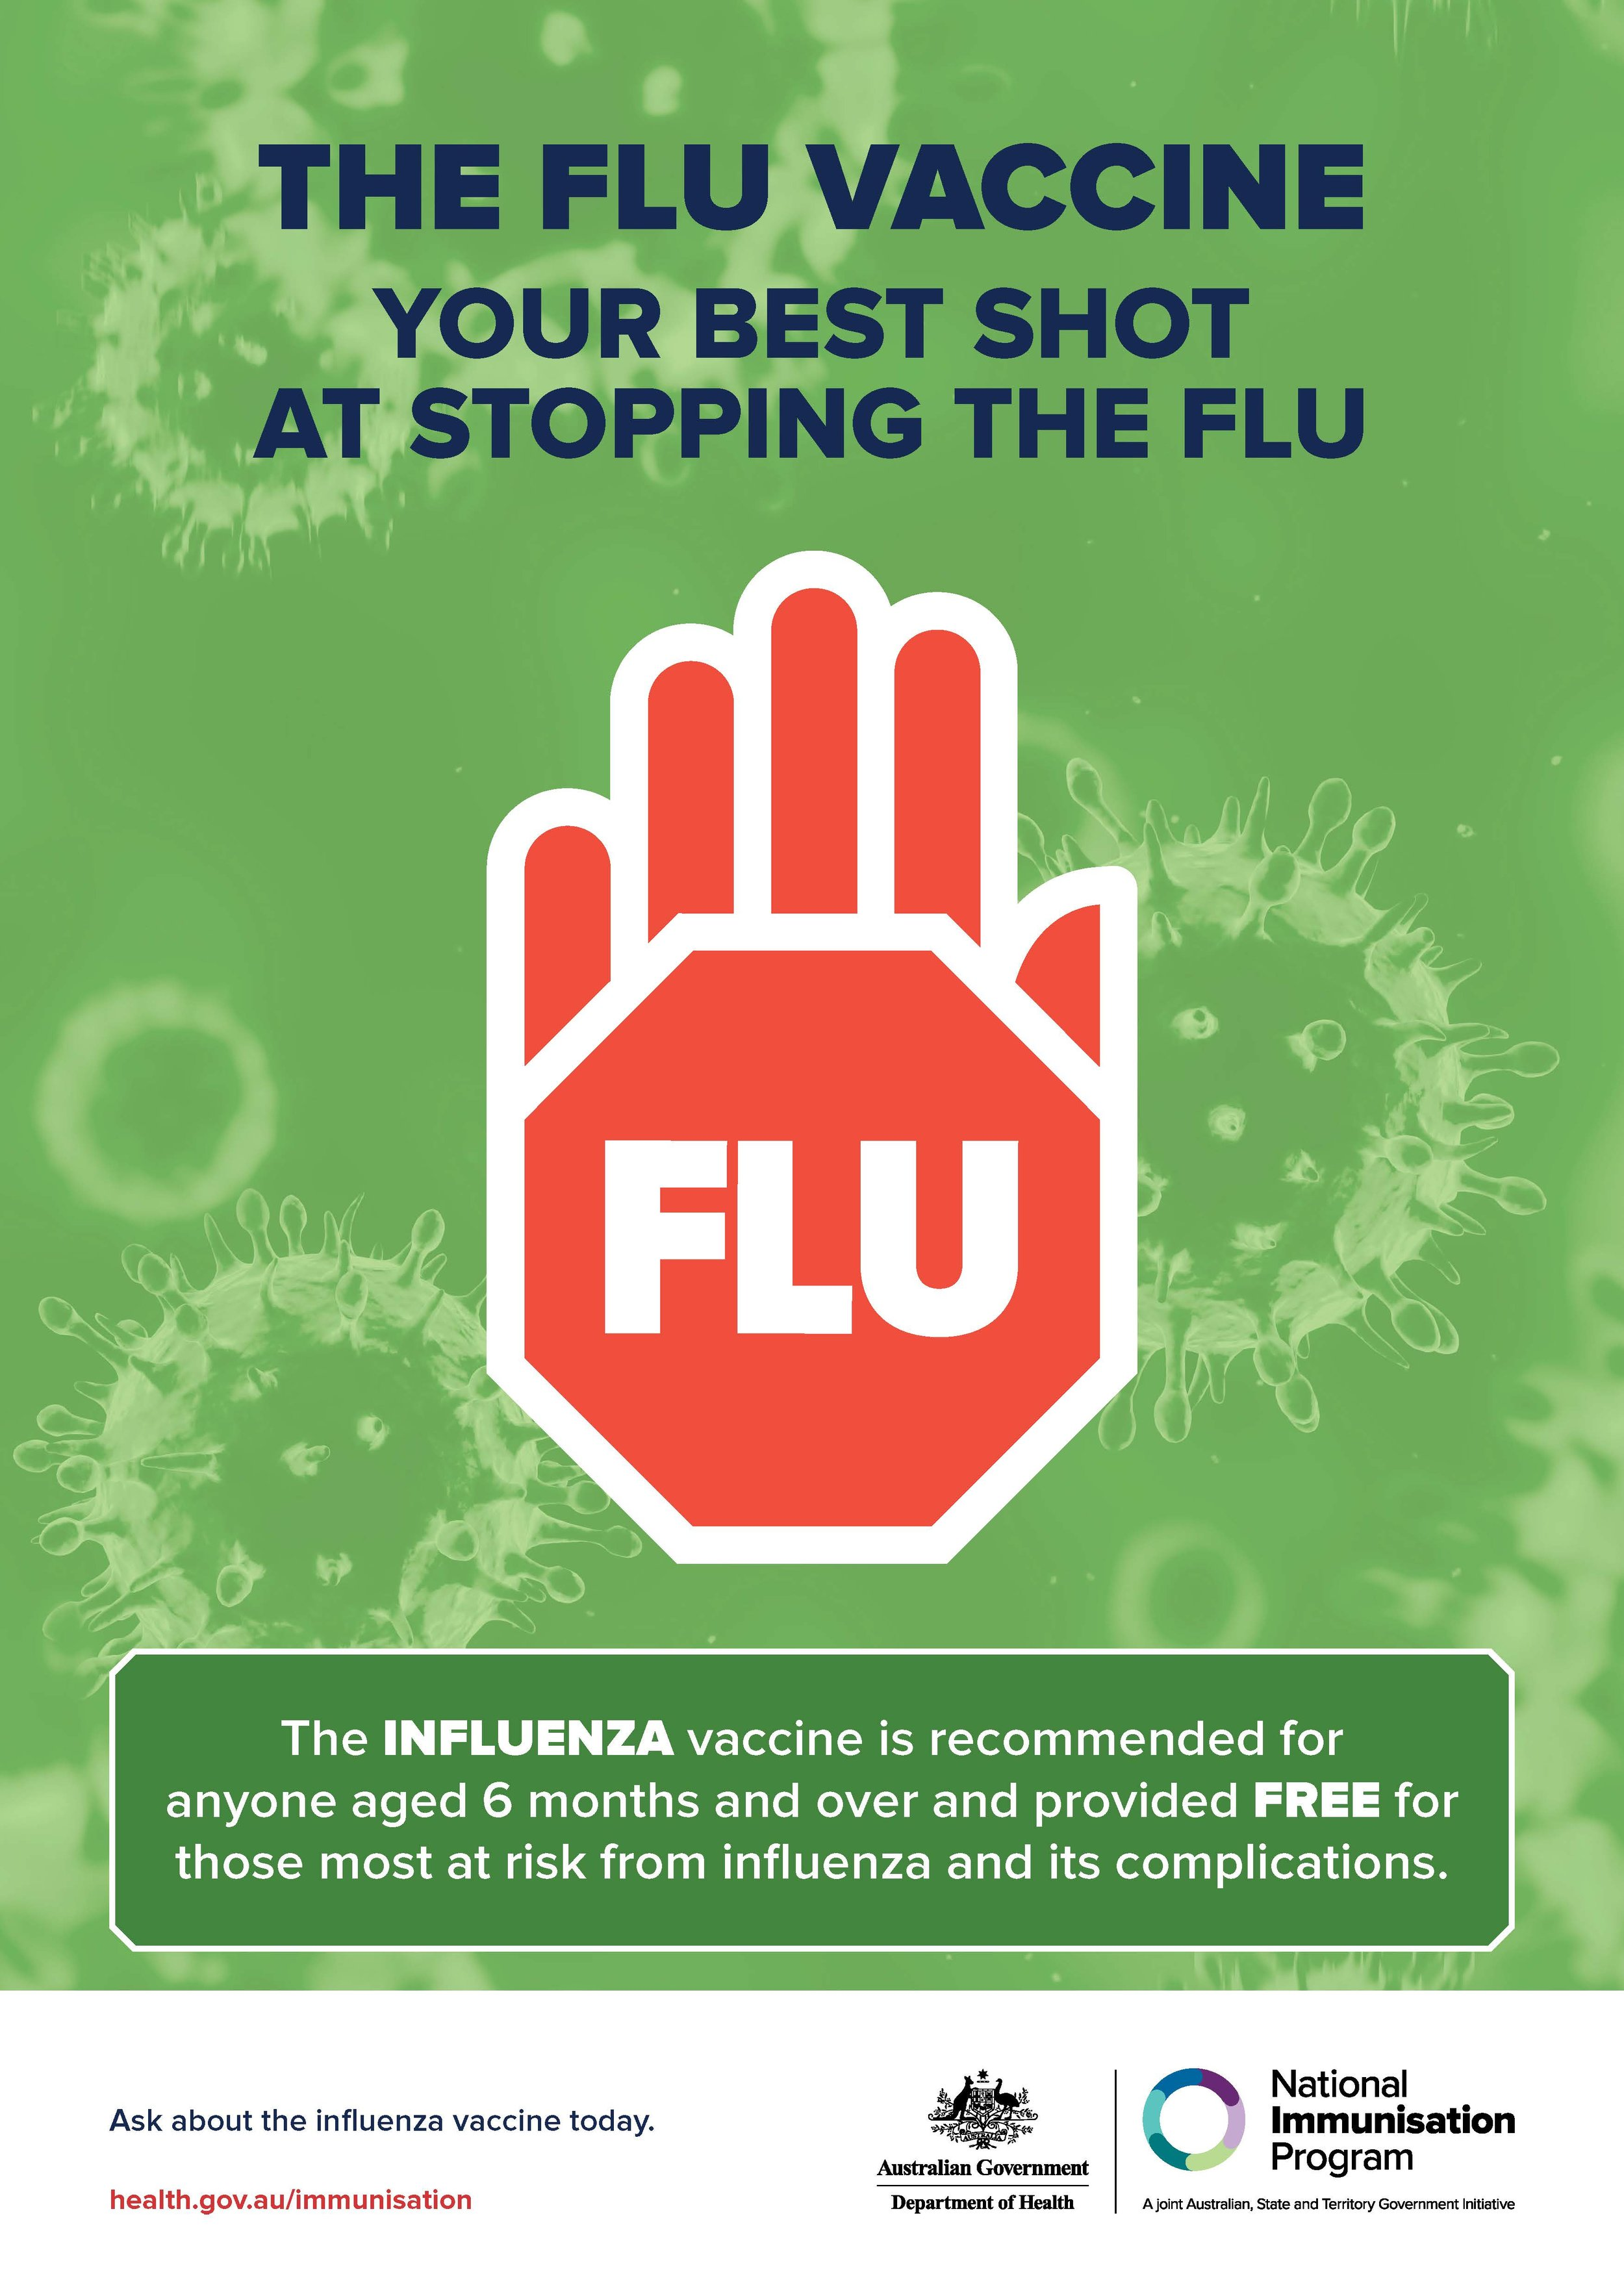 the-flu-vaccine-your-best-shot-at-stopping-the-flu-in-2019-poster-general_0.jpg